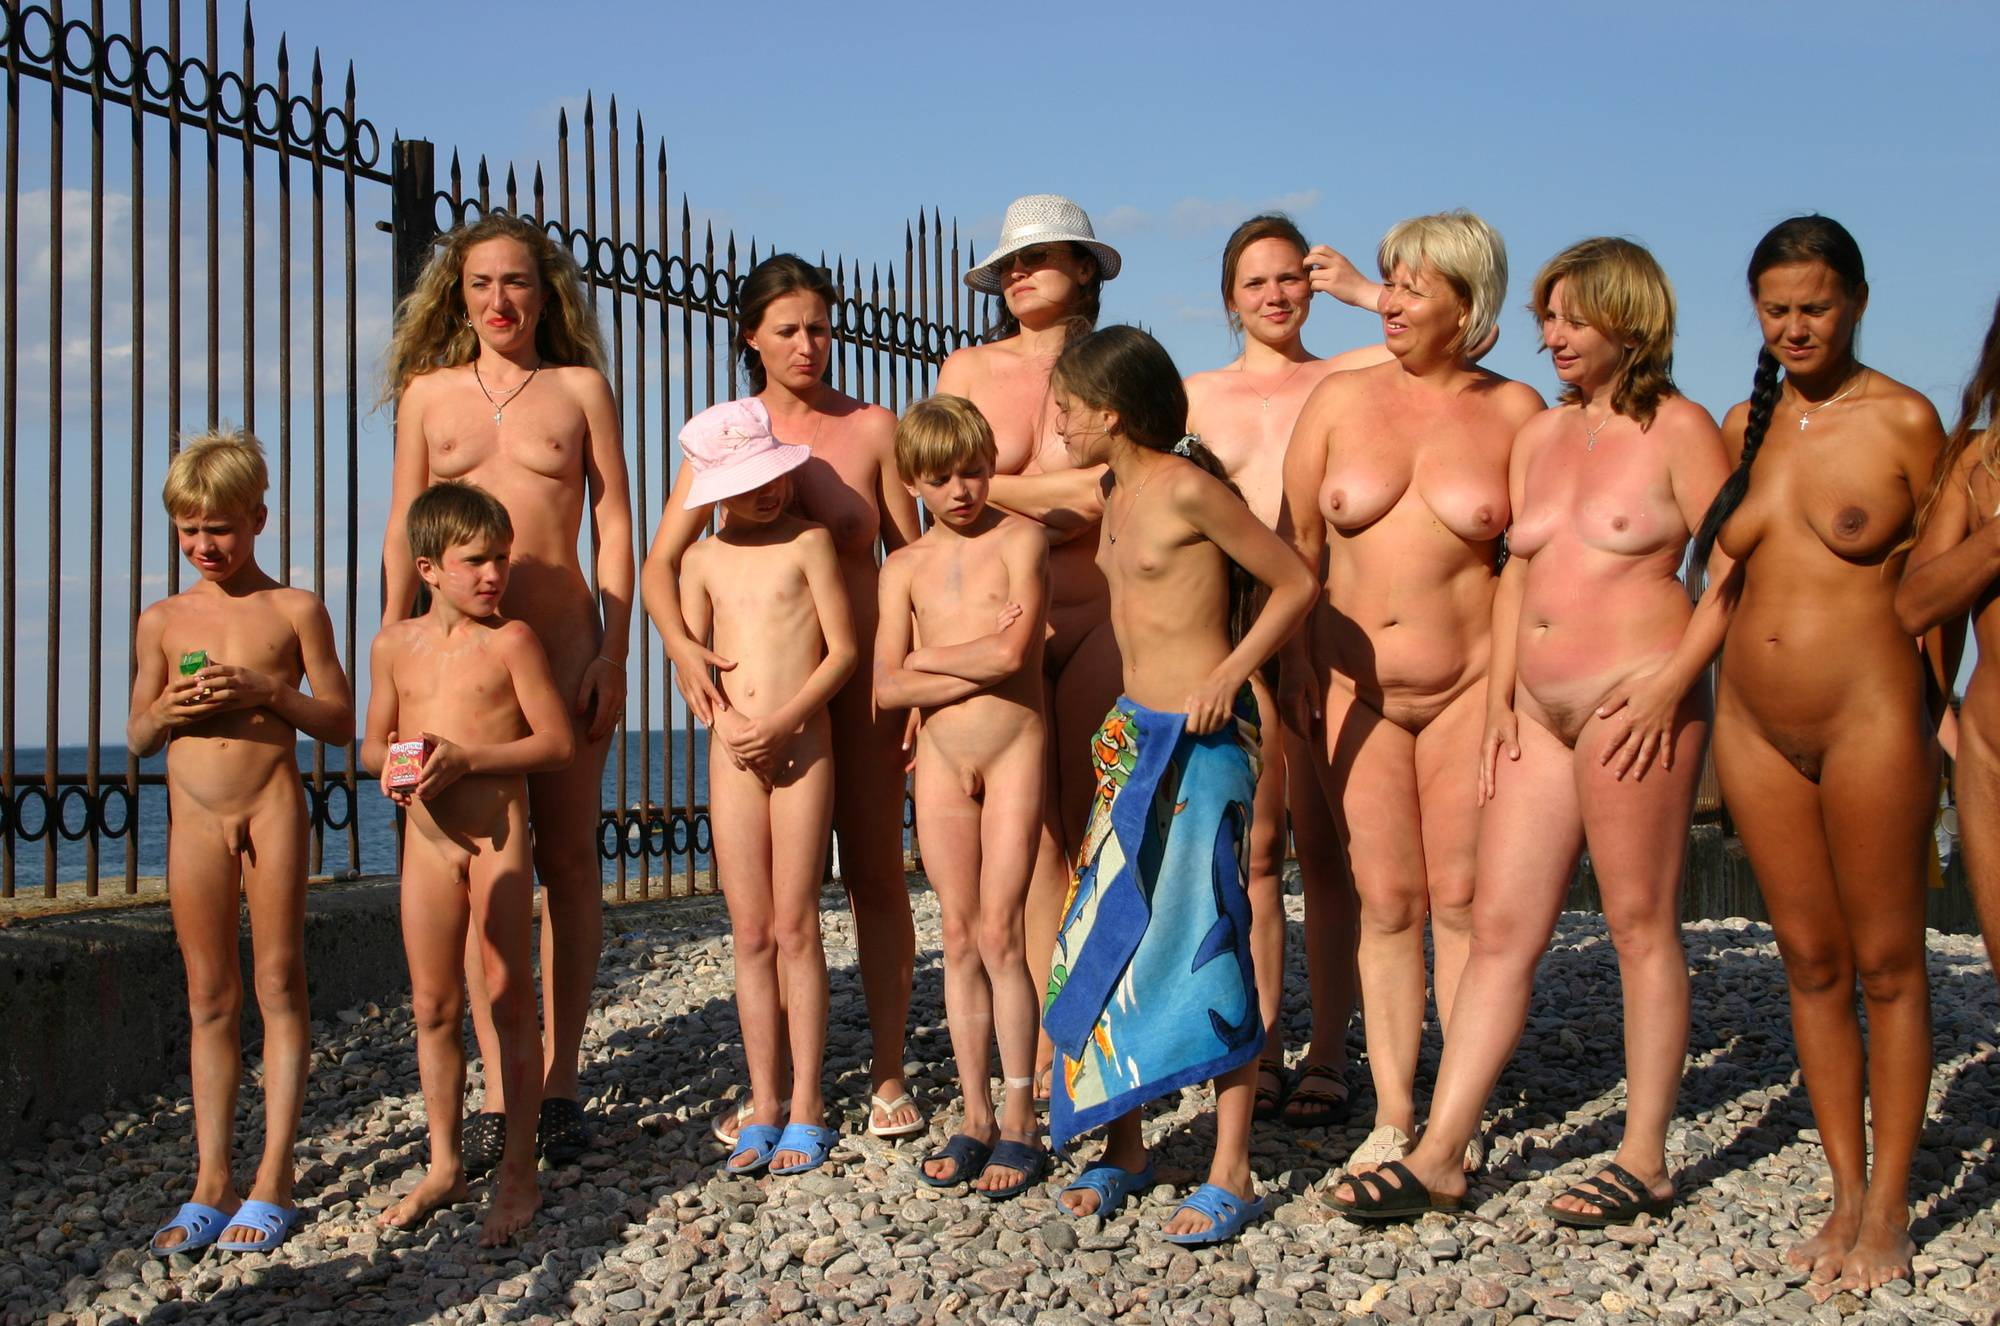 Presents by Naturist Wall - 1